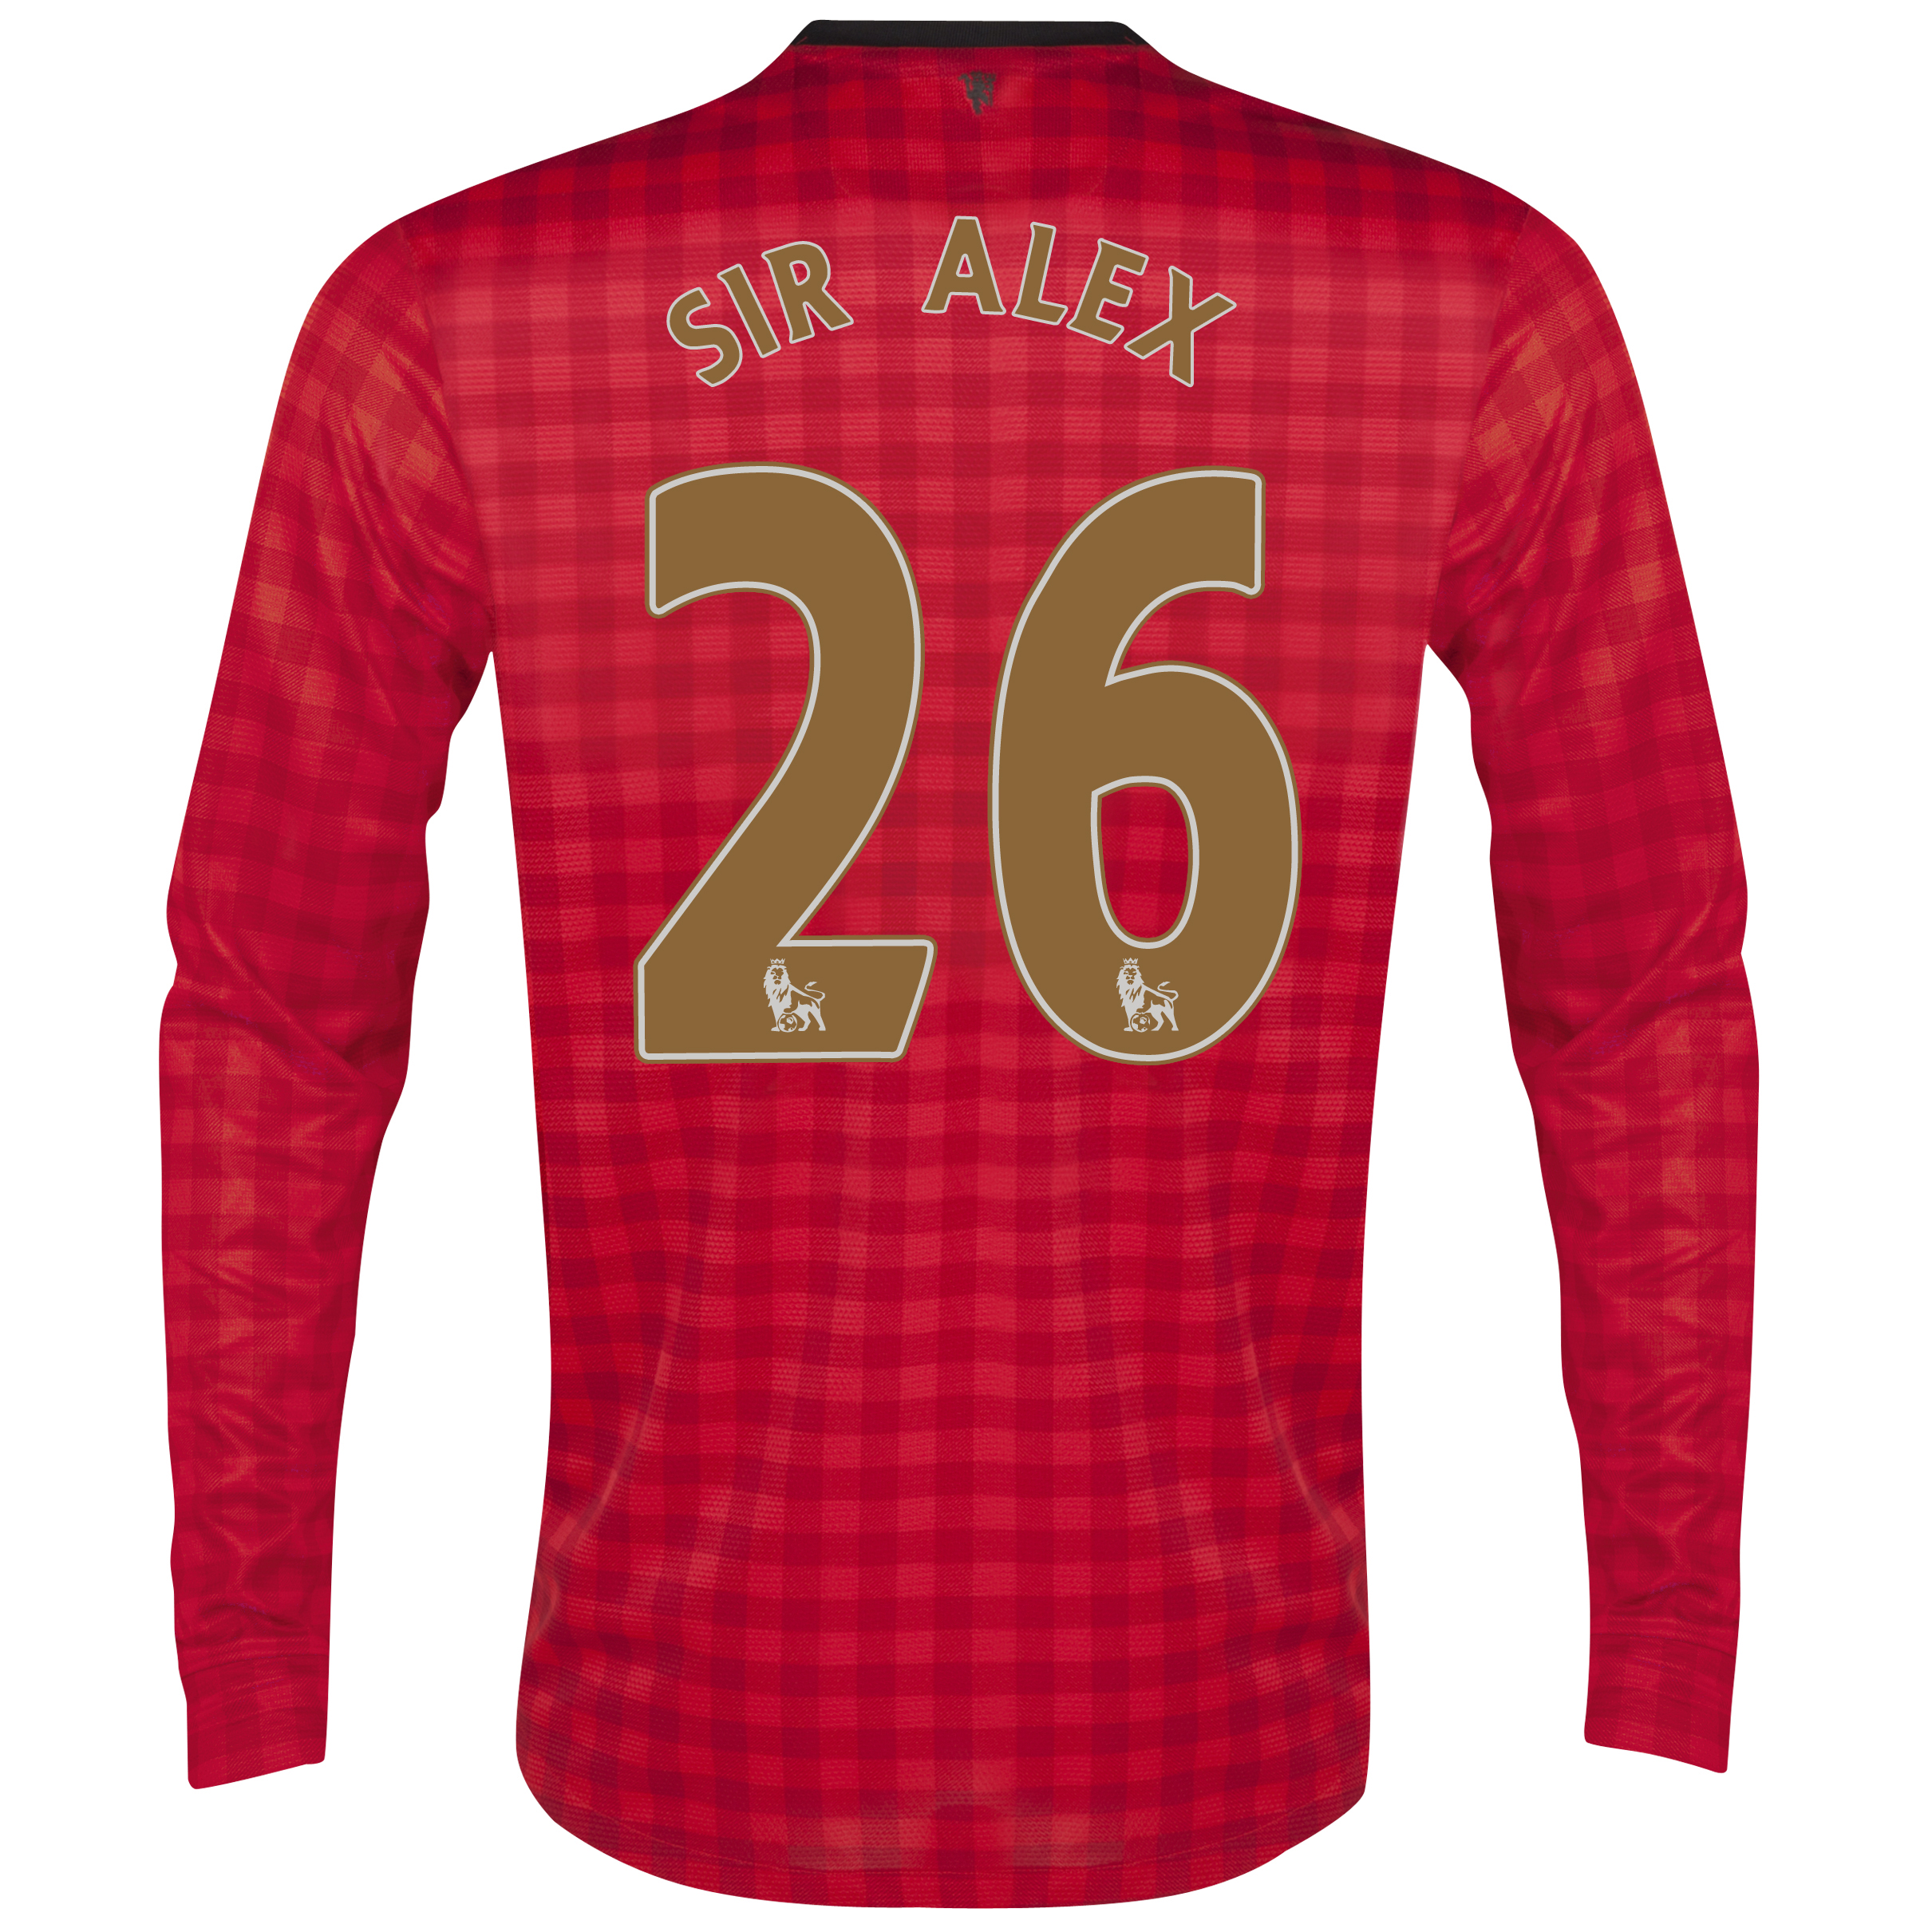 Manchester United Home Shirt 2012/13 - Long Sleeved  - Youths with Sir Alex 26 printing